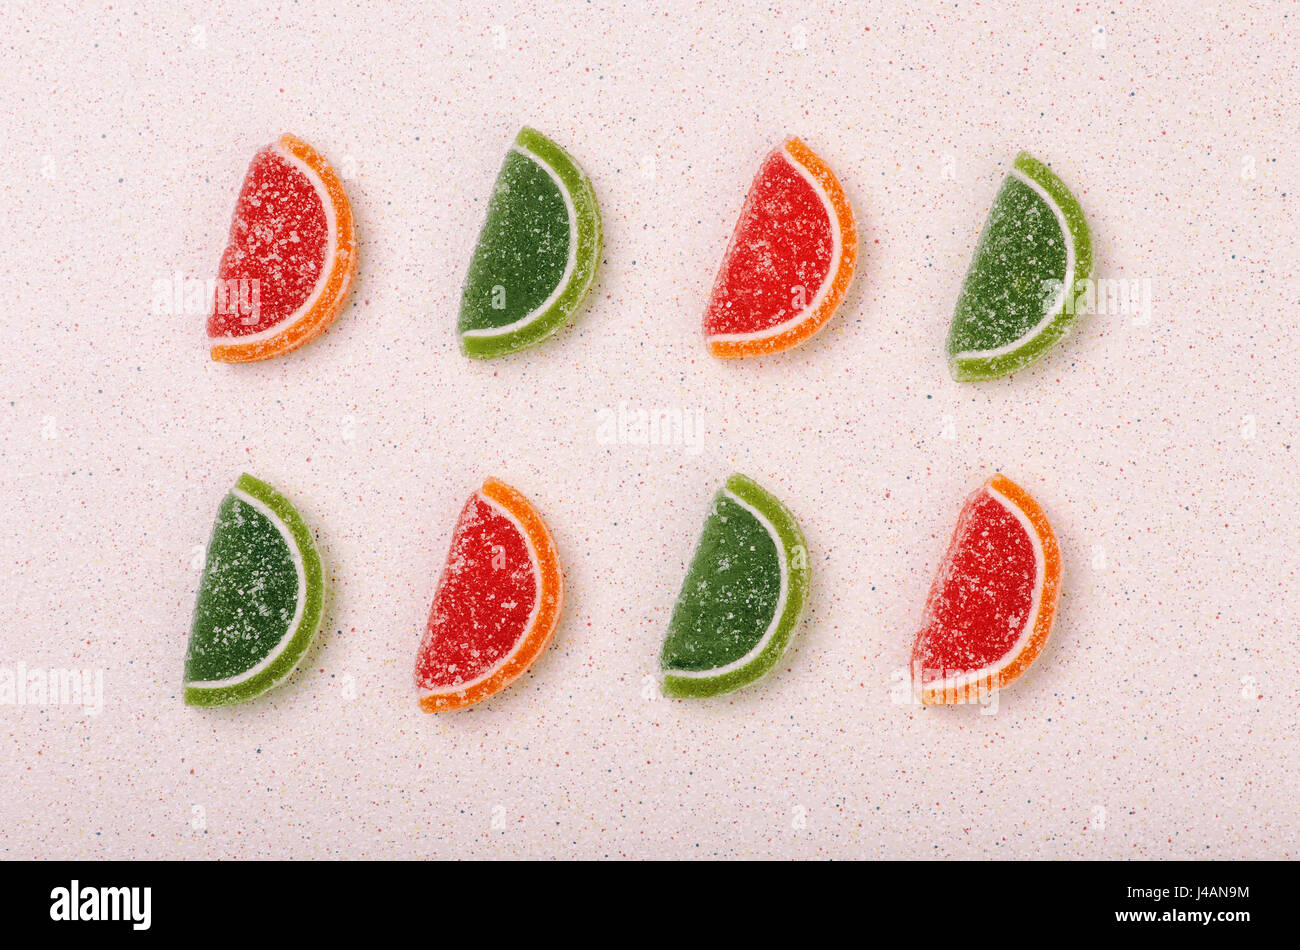 Still life of marmalade slices of citrus fruit lined with a color pattern. - Stock Image